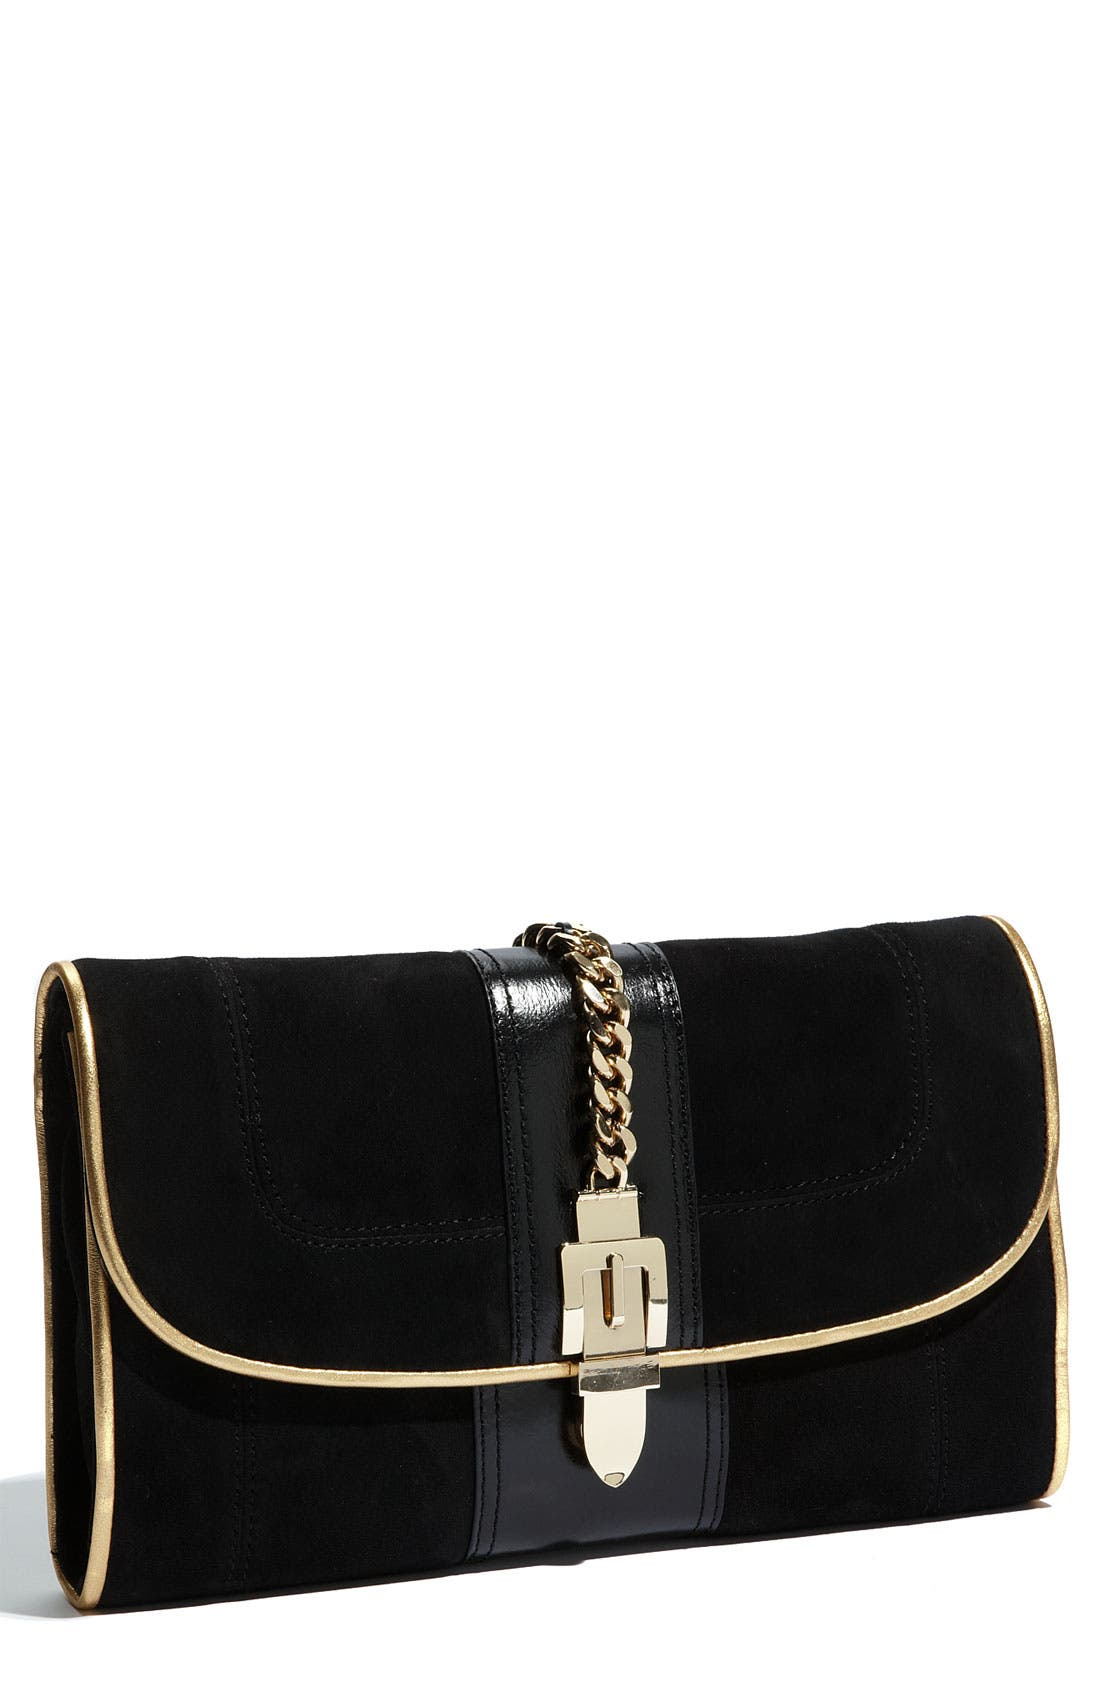 Main Image - Milly 'Victoria' Clutch